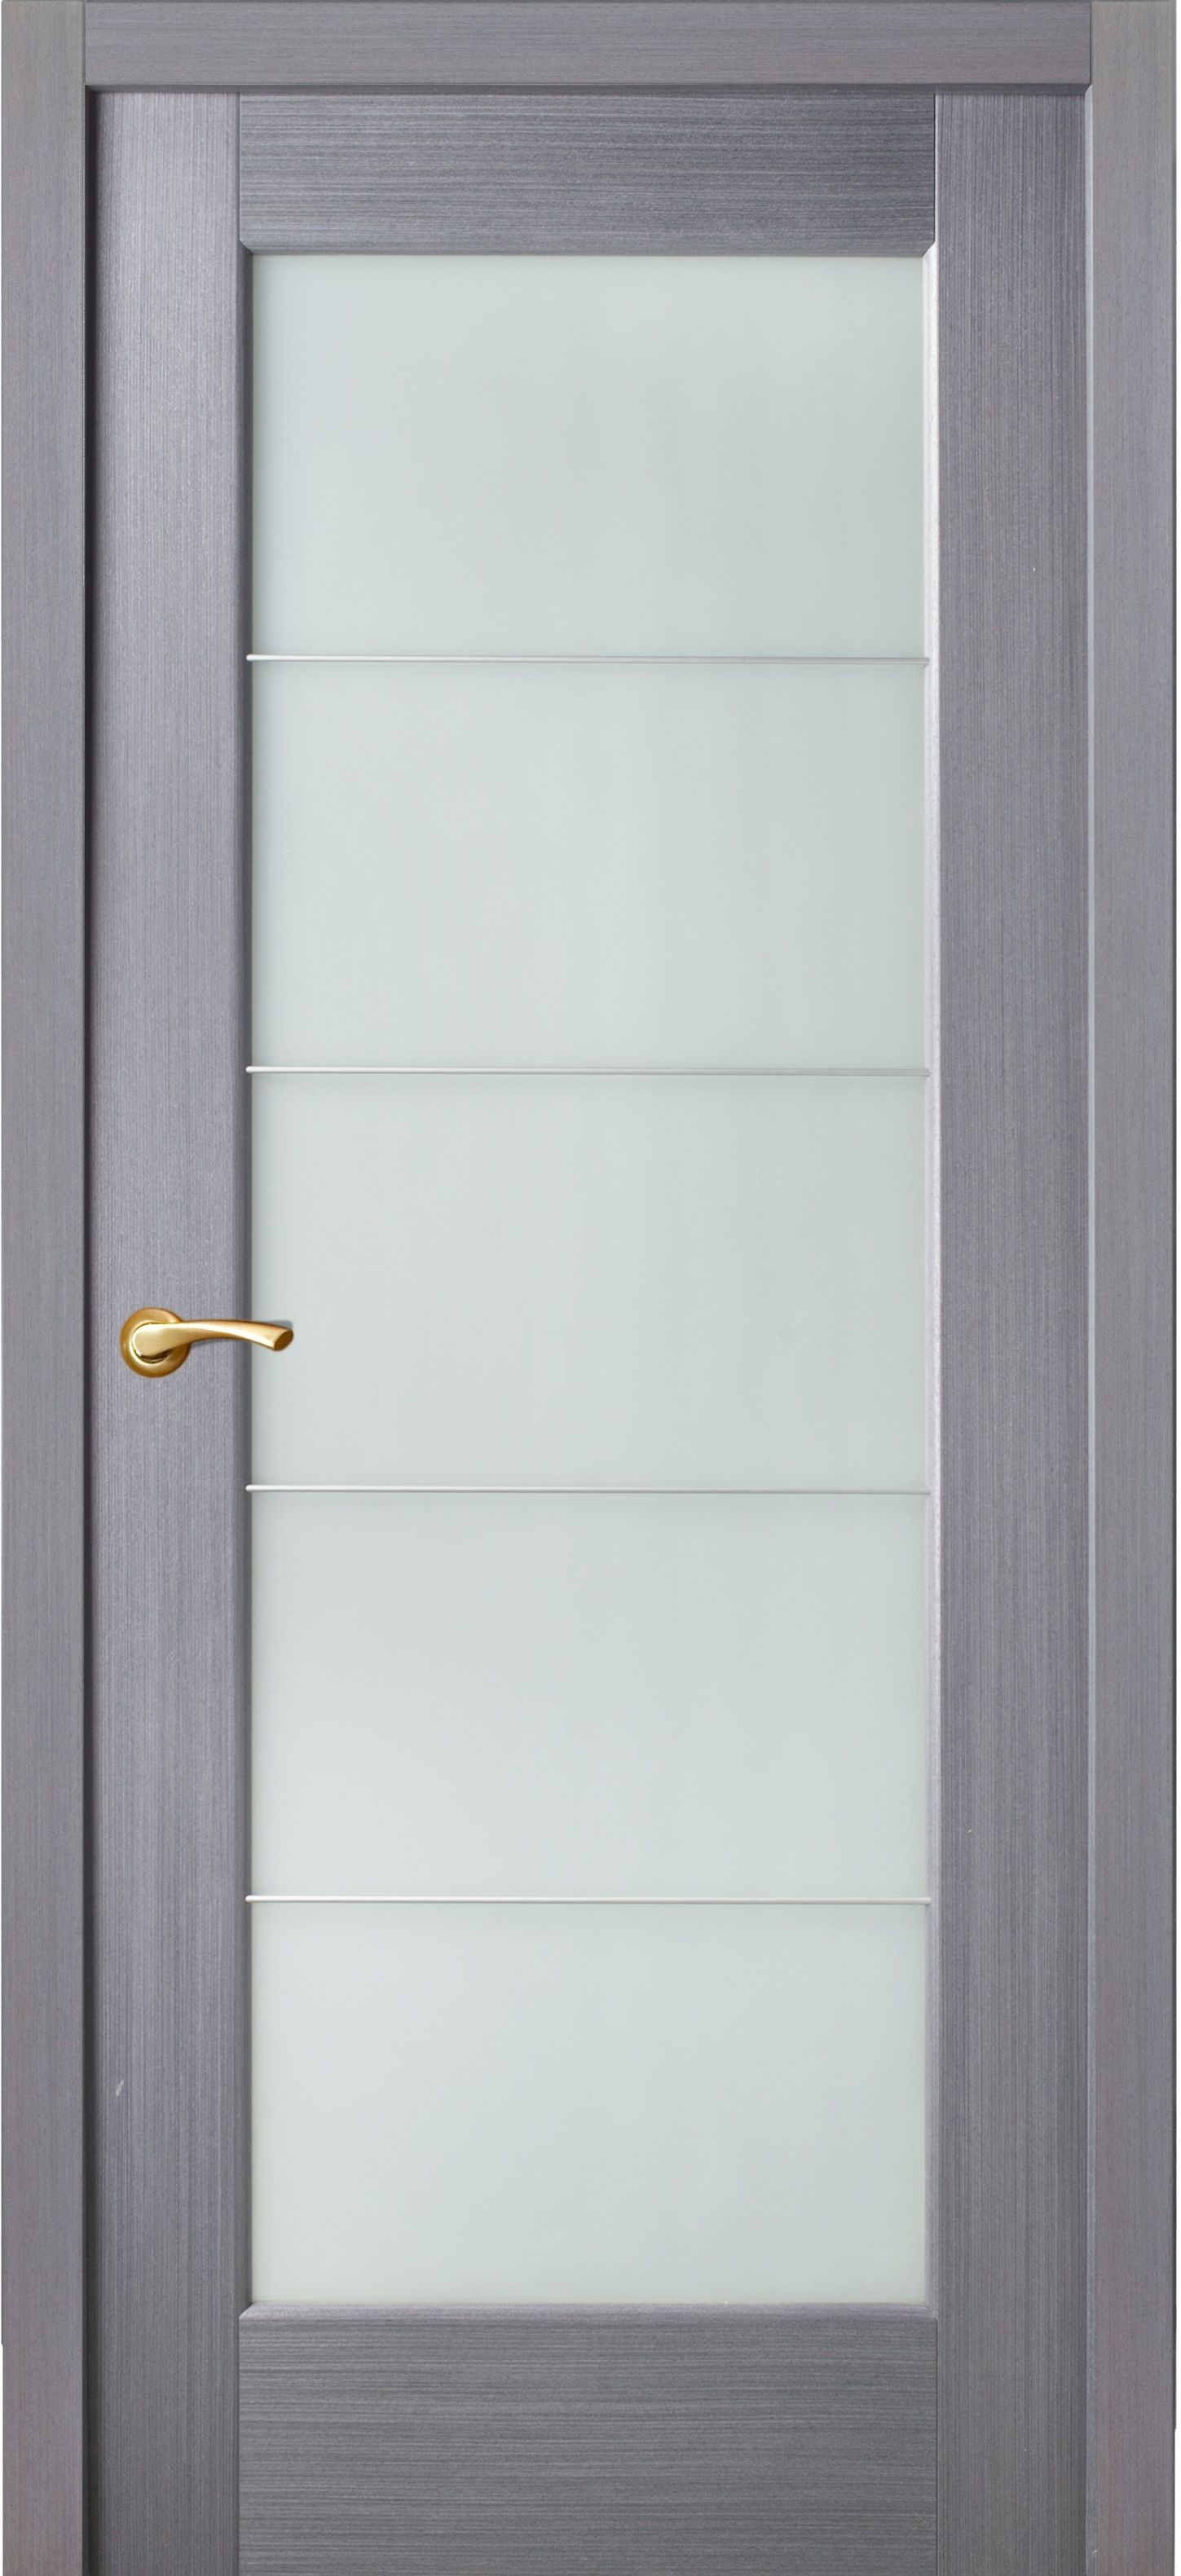 Door grey color in the style of techno with five frosted glass separated by aluminum partitions